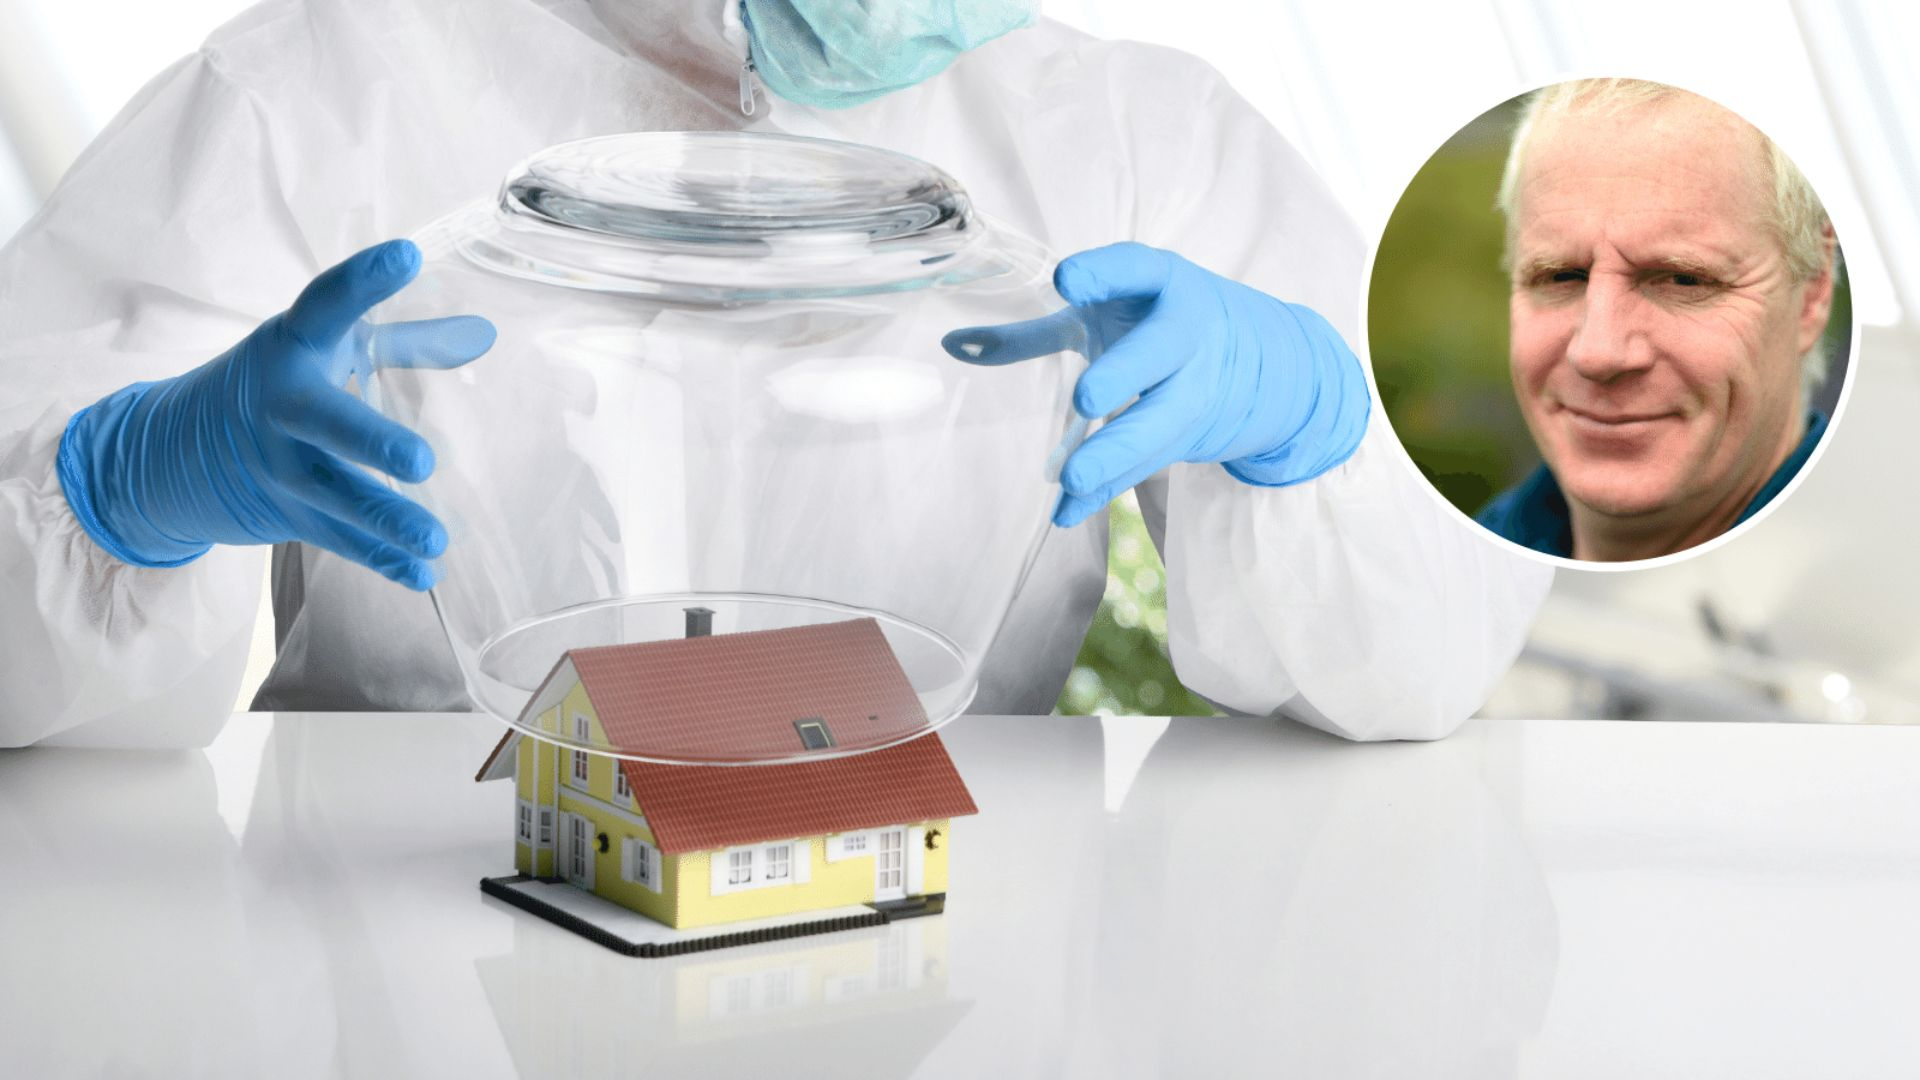 COVID-19, future pandemics, and rethinking residential housing design